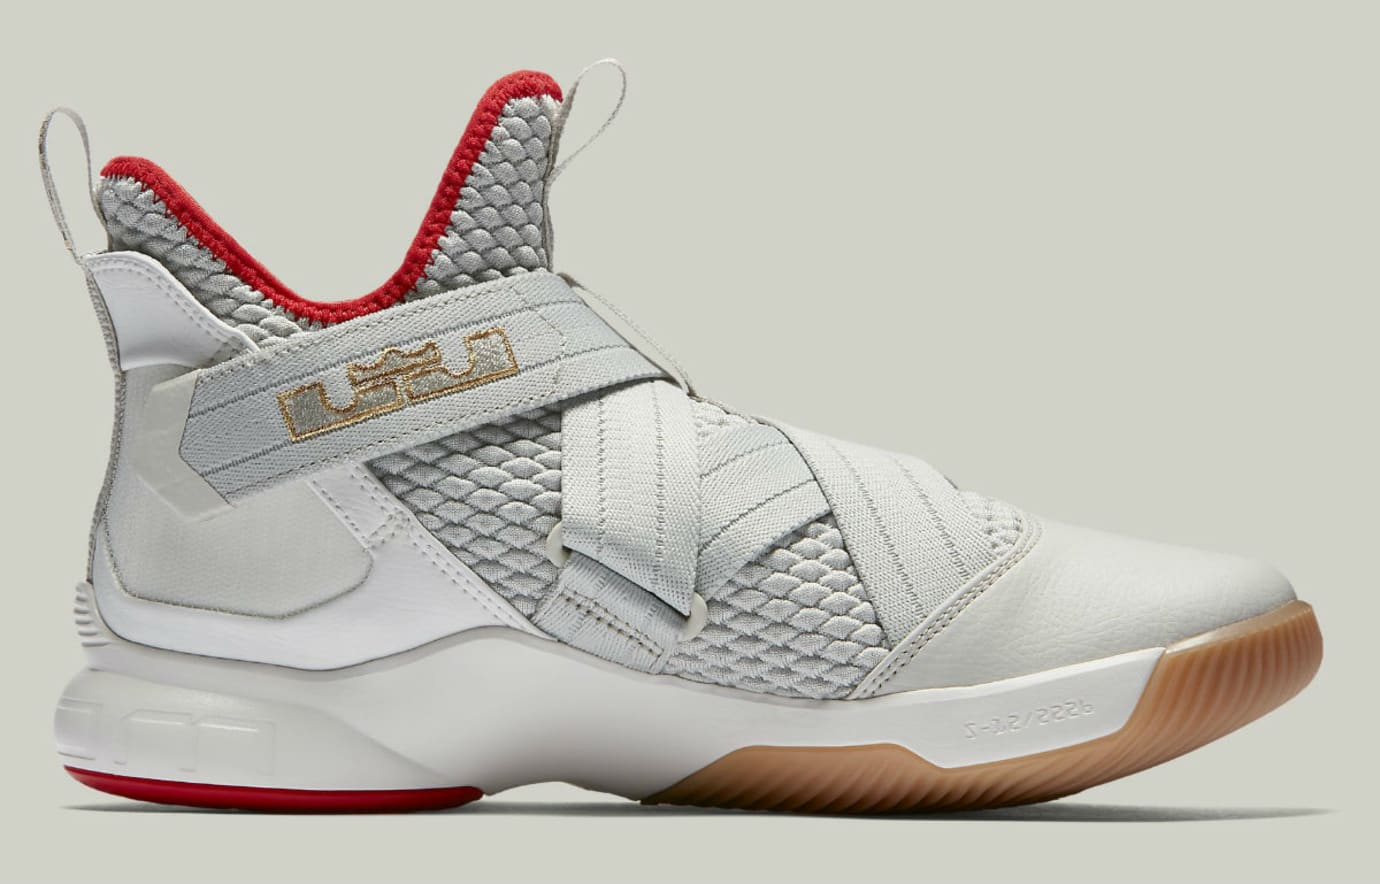 dffefa91cc33 Nike LeBron Soldier 12 Yeezy Release Date AO2609-002 Medial